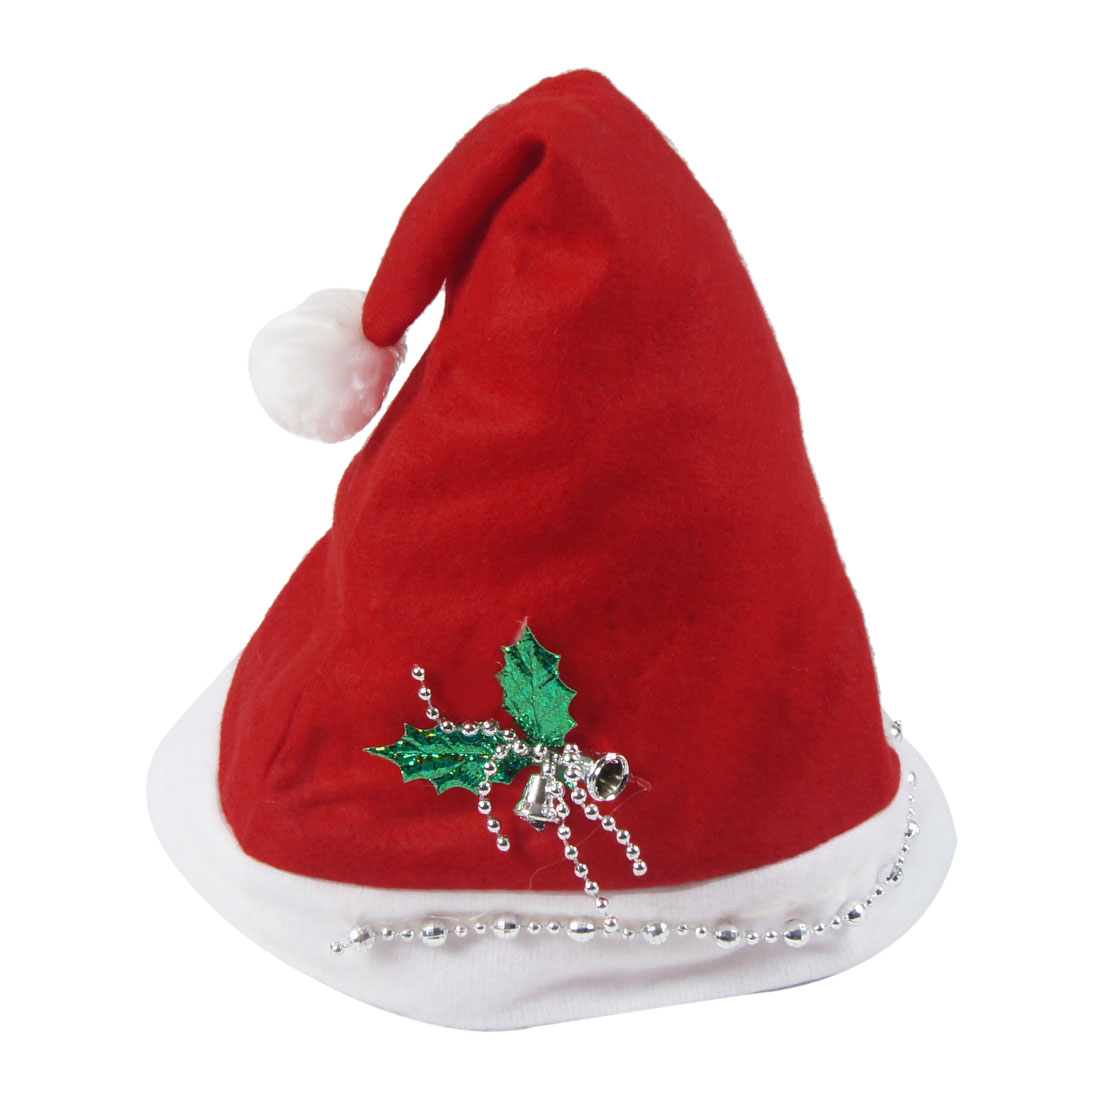 White Trim Silver Tone Bells Decor Christmas Santa Hat for Adults